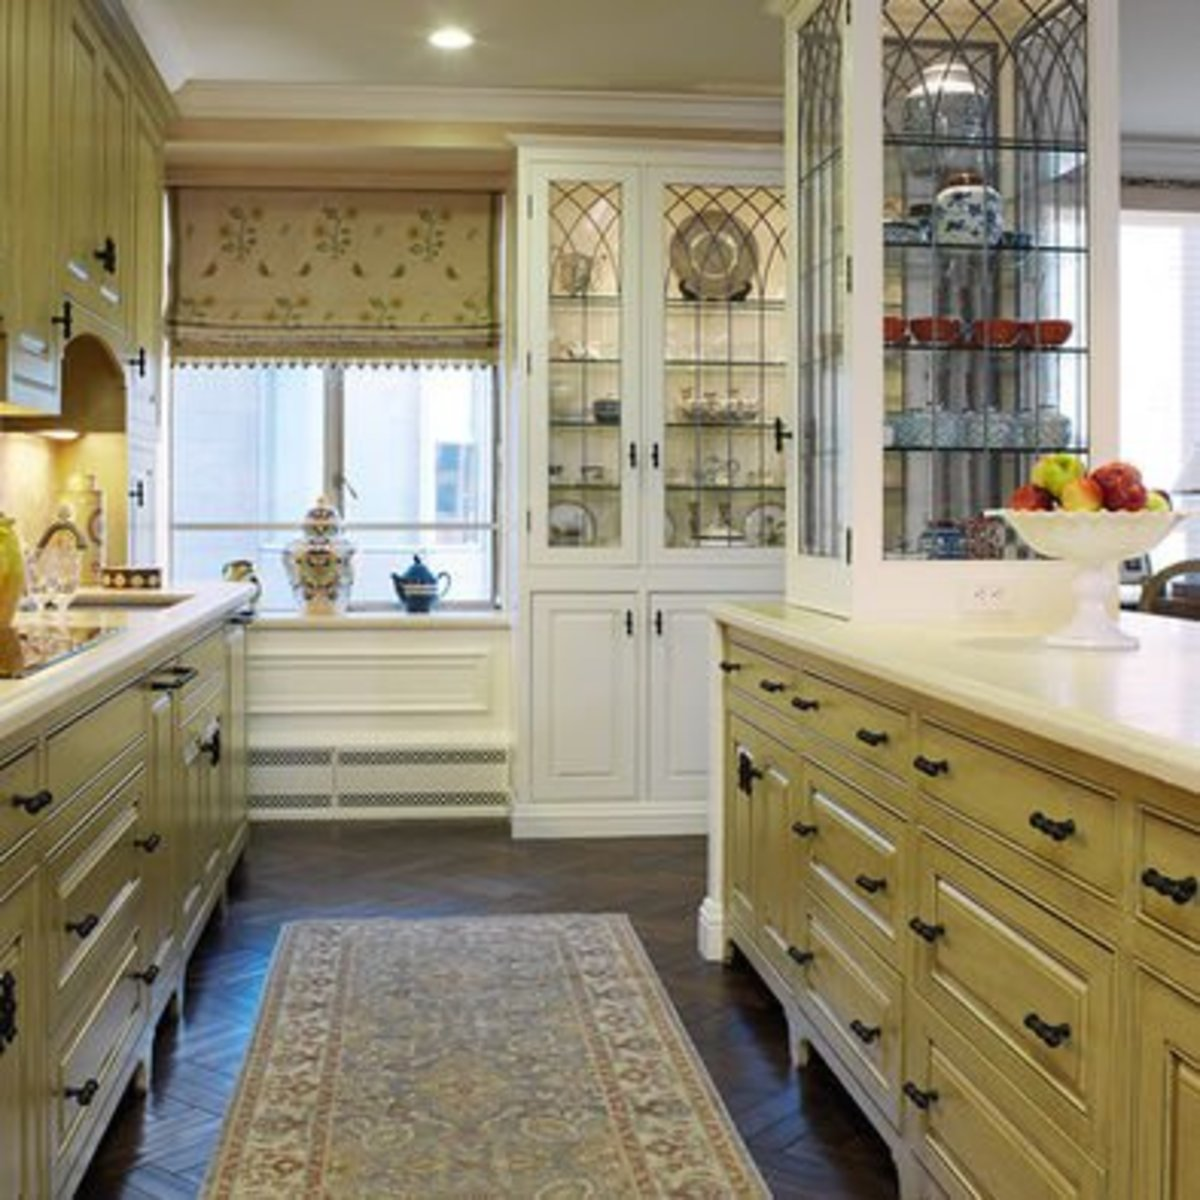 home-improvement-ideas-white-kitchen-cabinets-with-glass-doors